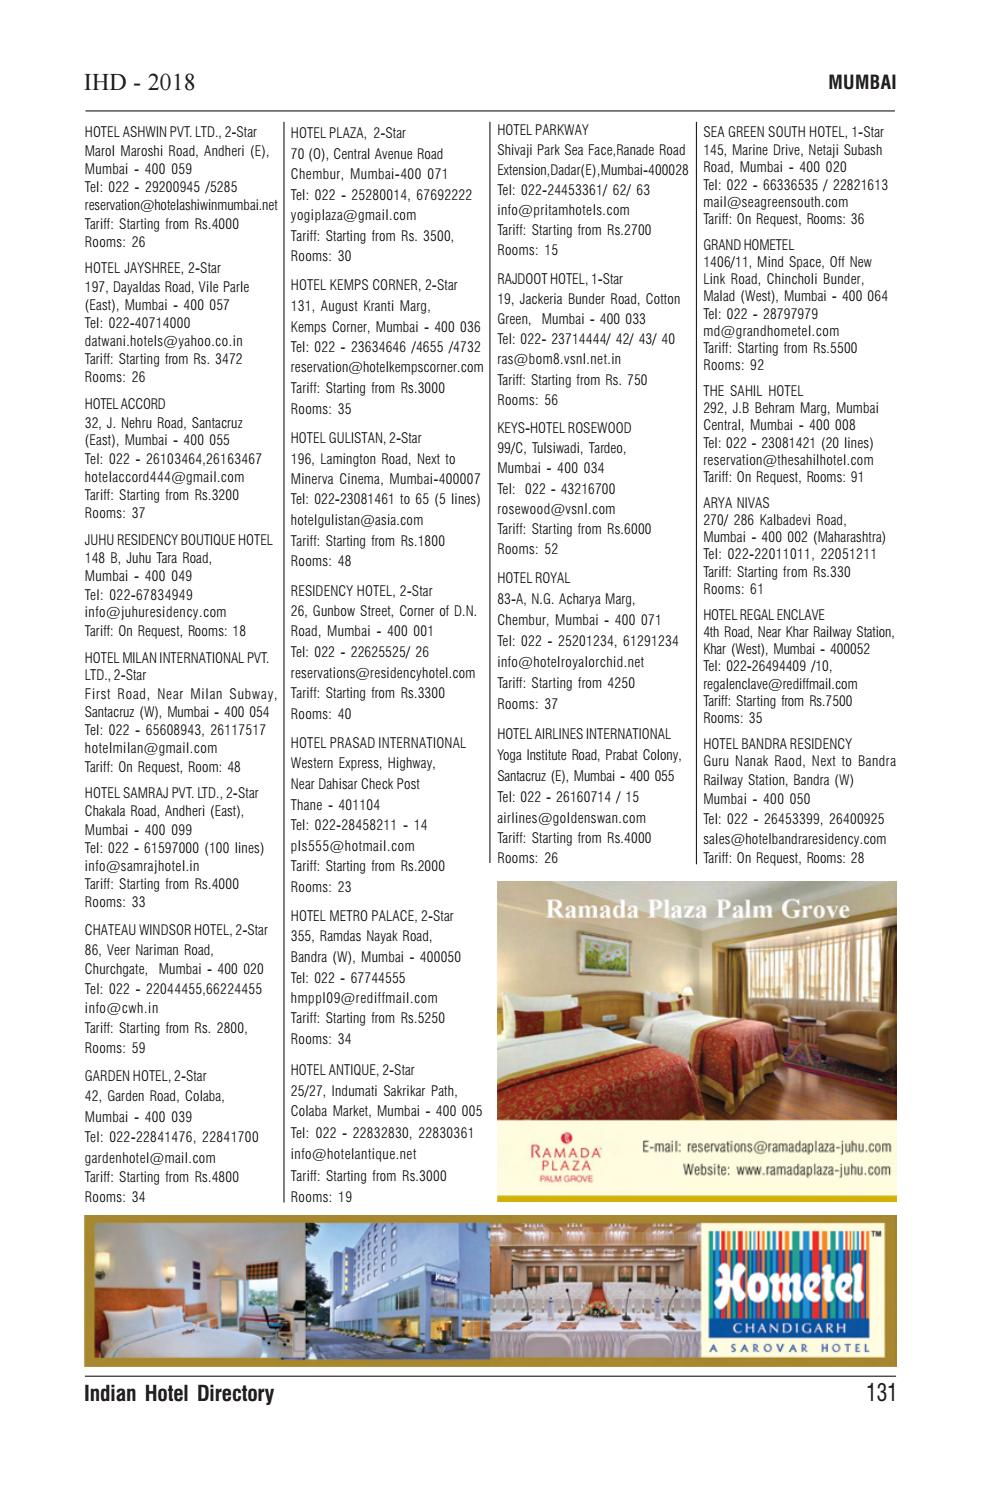 Ihd Indian Hotel Directory 2018 By Perfect Multimedia Issuu